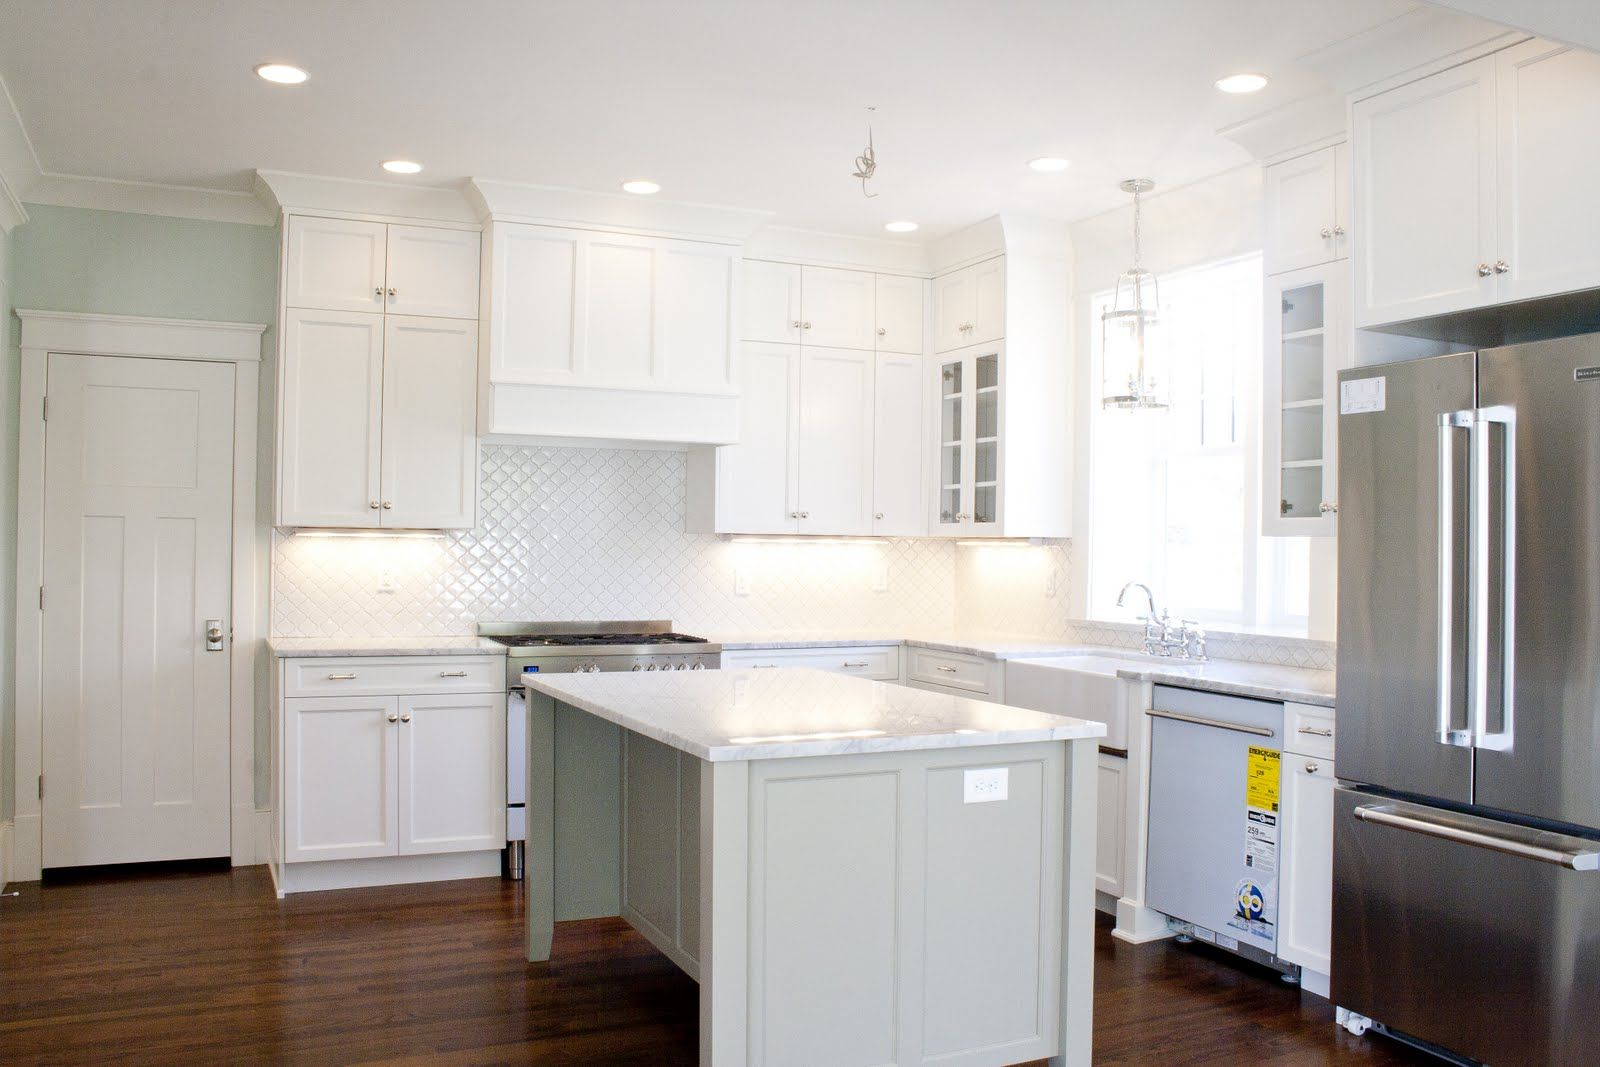 Wall Color For White Kitchen Loving The White Kitchen Tiek Built Homes Cabinets Is Bm Dune